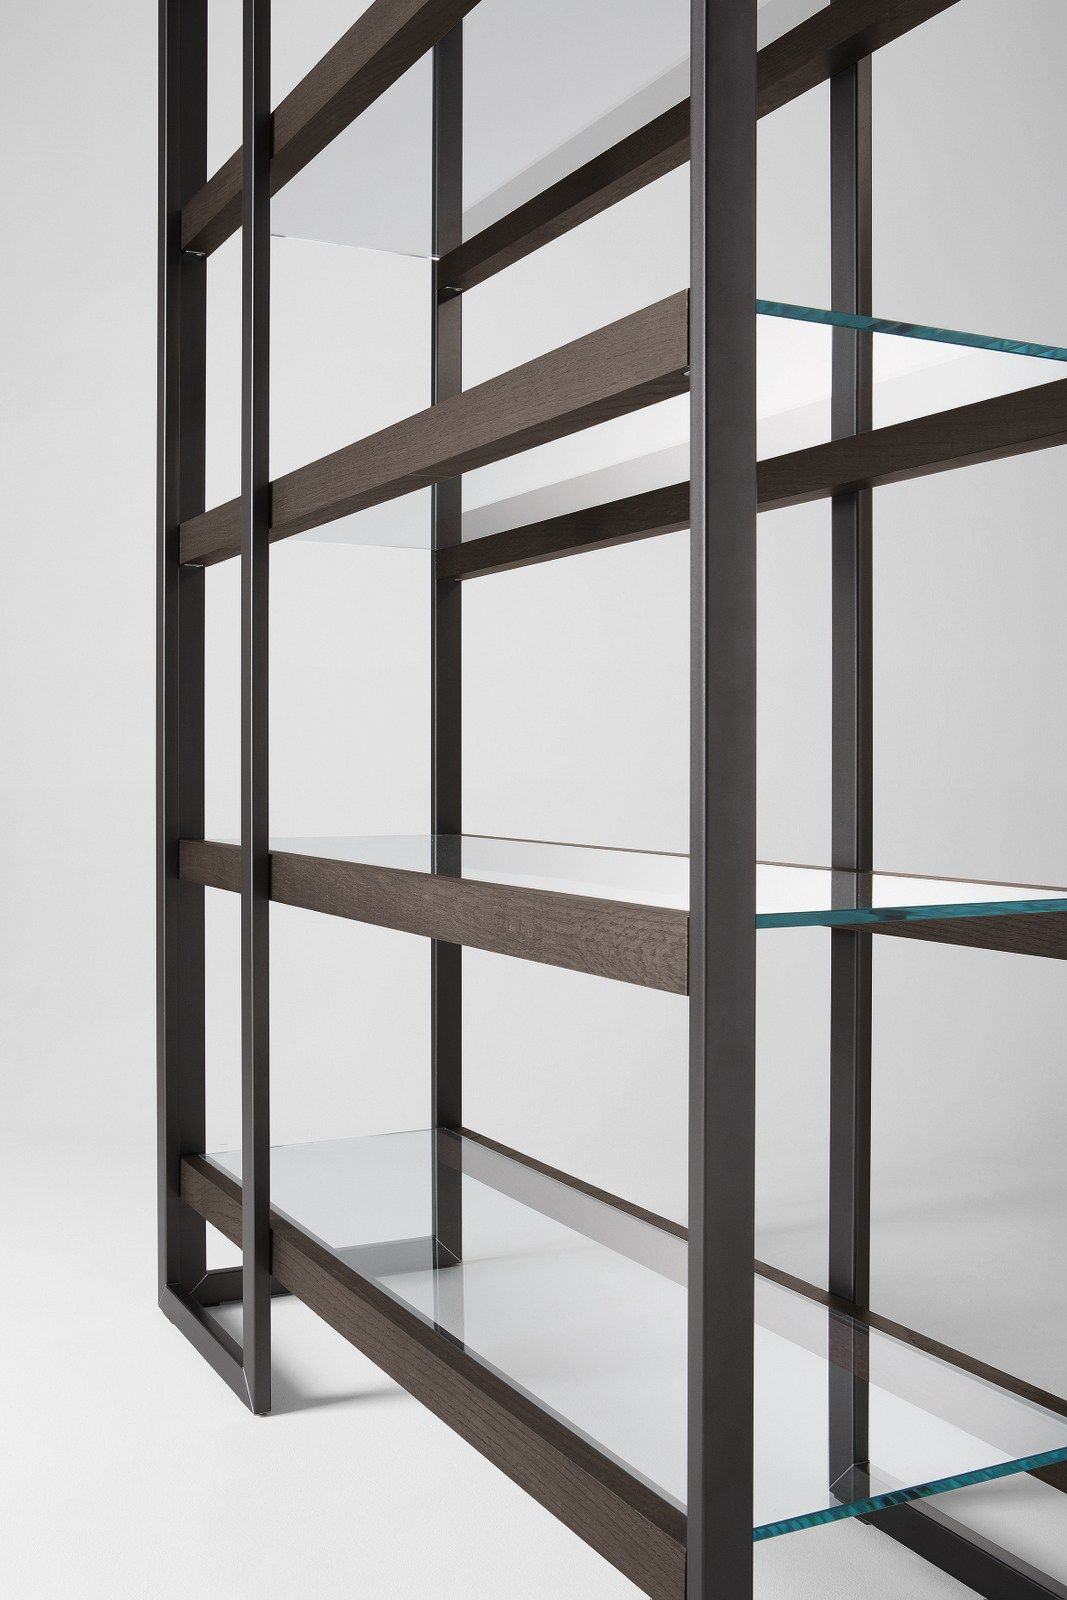 stainless steel bookcase dipsy gallottiradice - Steel Bookshelves